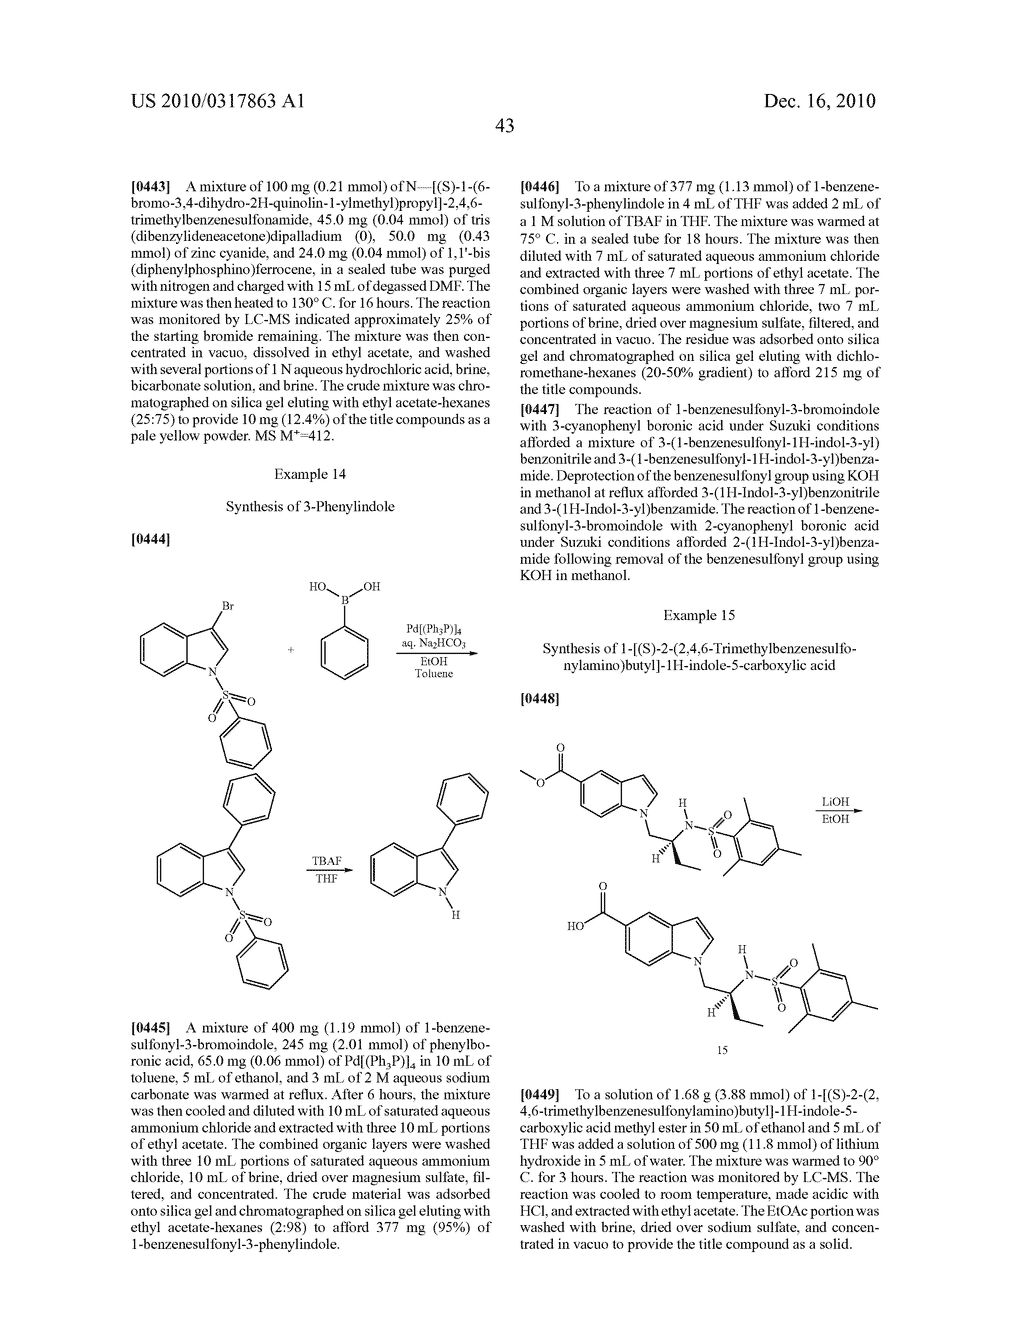 Glucocorticoid Mimetics, Methods of Making Them, Pharmaceutical Compositions and Uses Thereof - diagram, schematic, and image 44